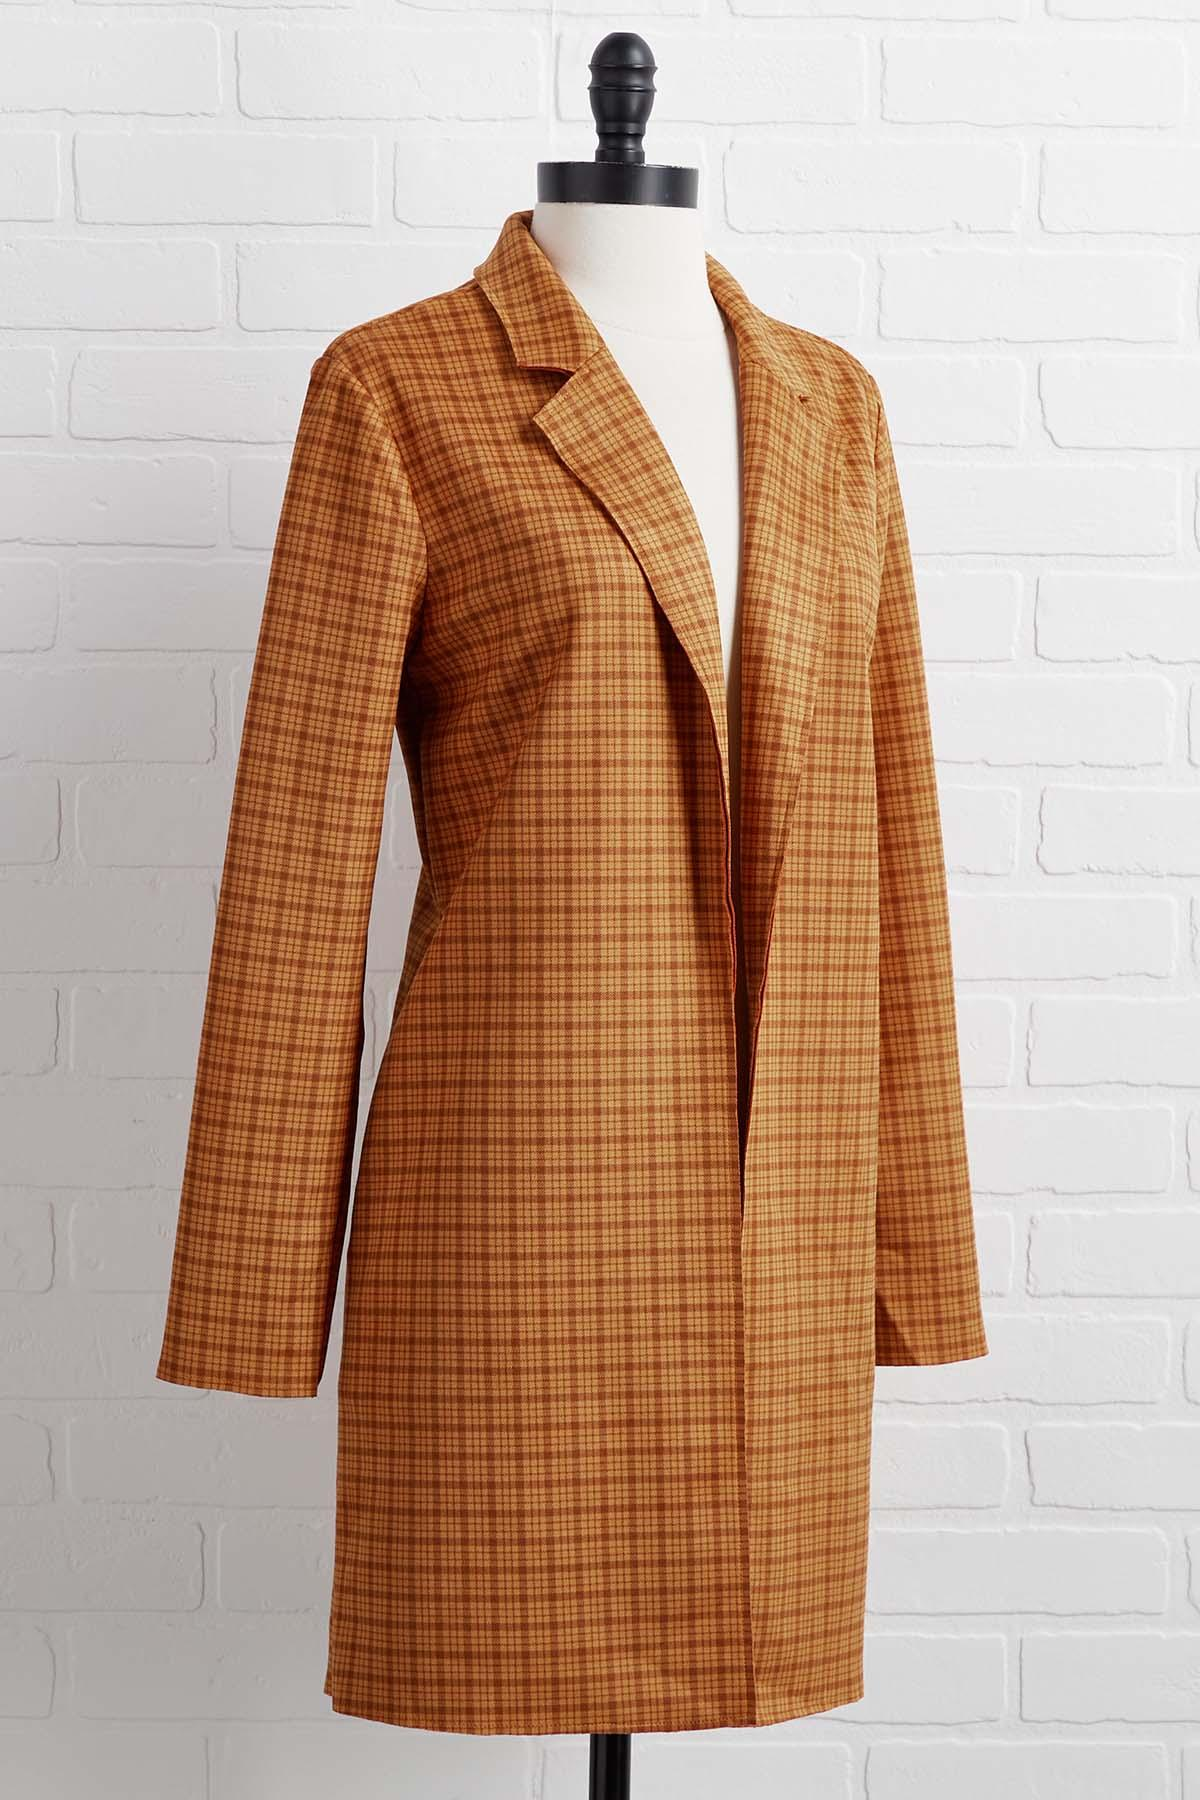 The Perfect Fall Day Jacket